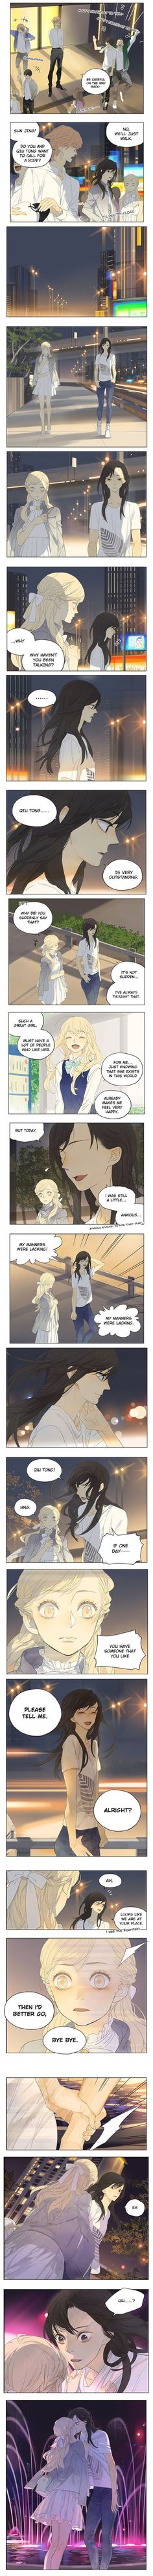 Tamen De Gushi 145 ♥ - Ahhhh!!! It finally happened!!! They kissed!!! #TheirStory